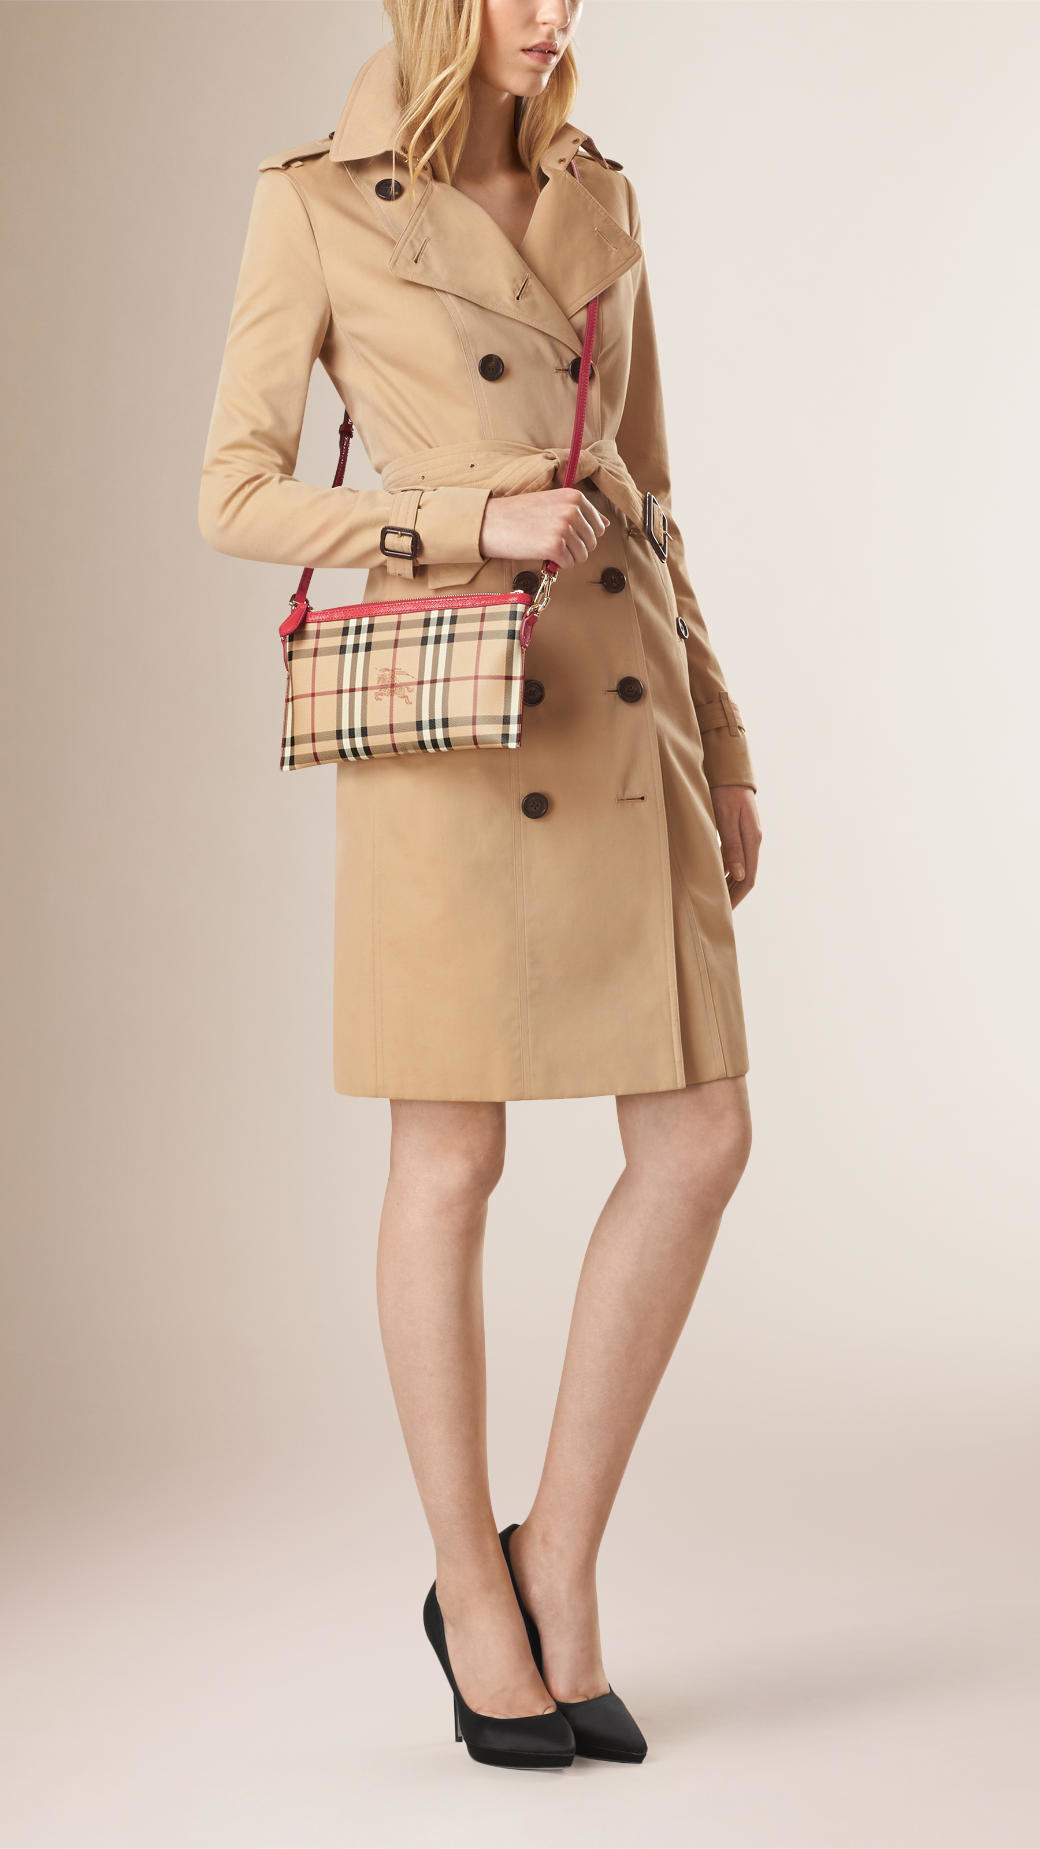 91b515185111 Lyst - Burberry Haymarket Check Clutch Bag in Natural